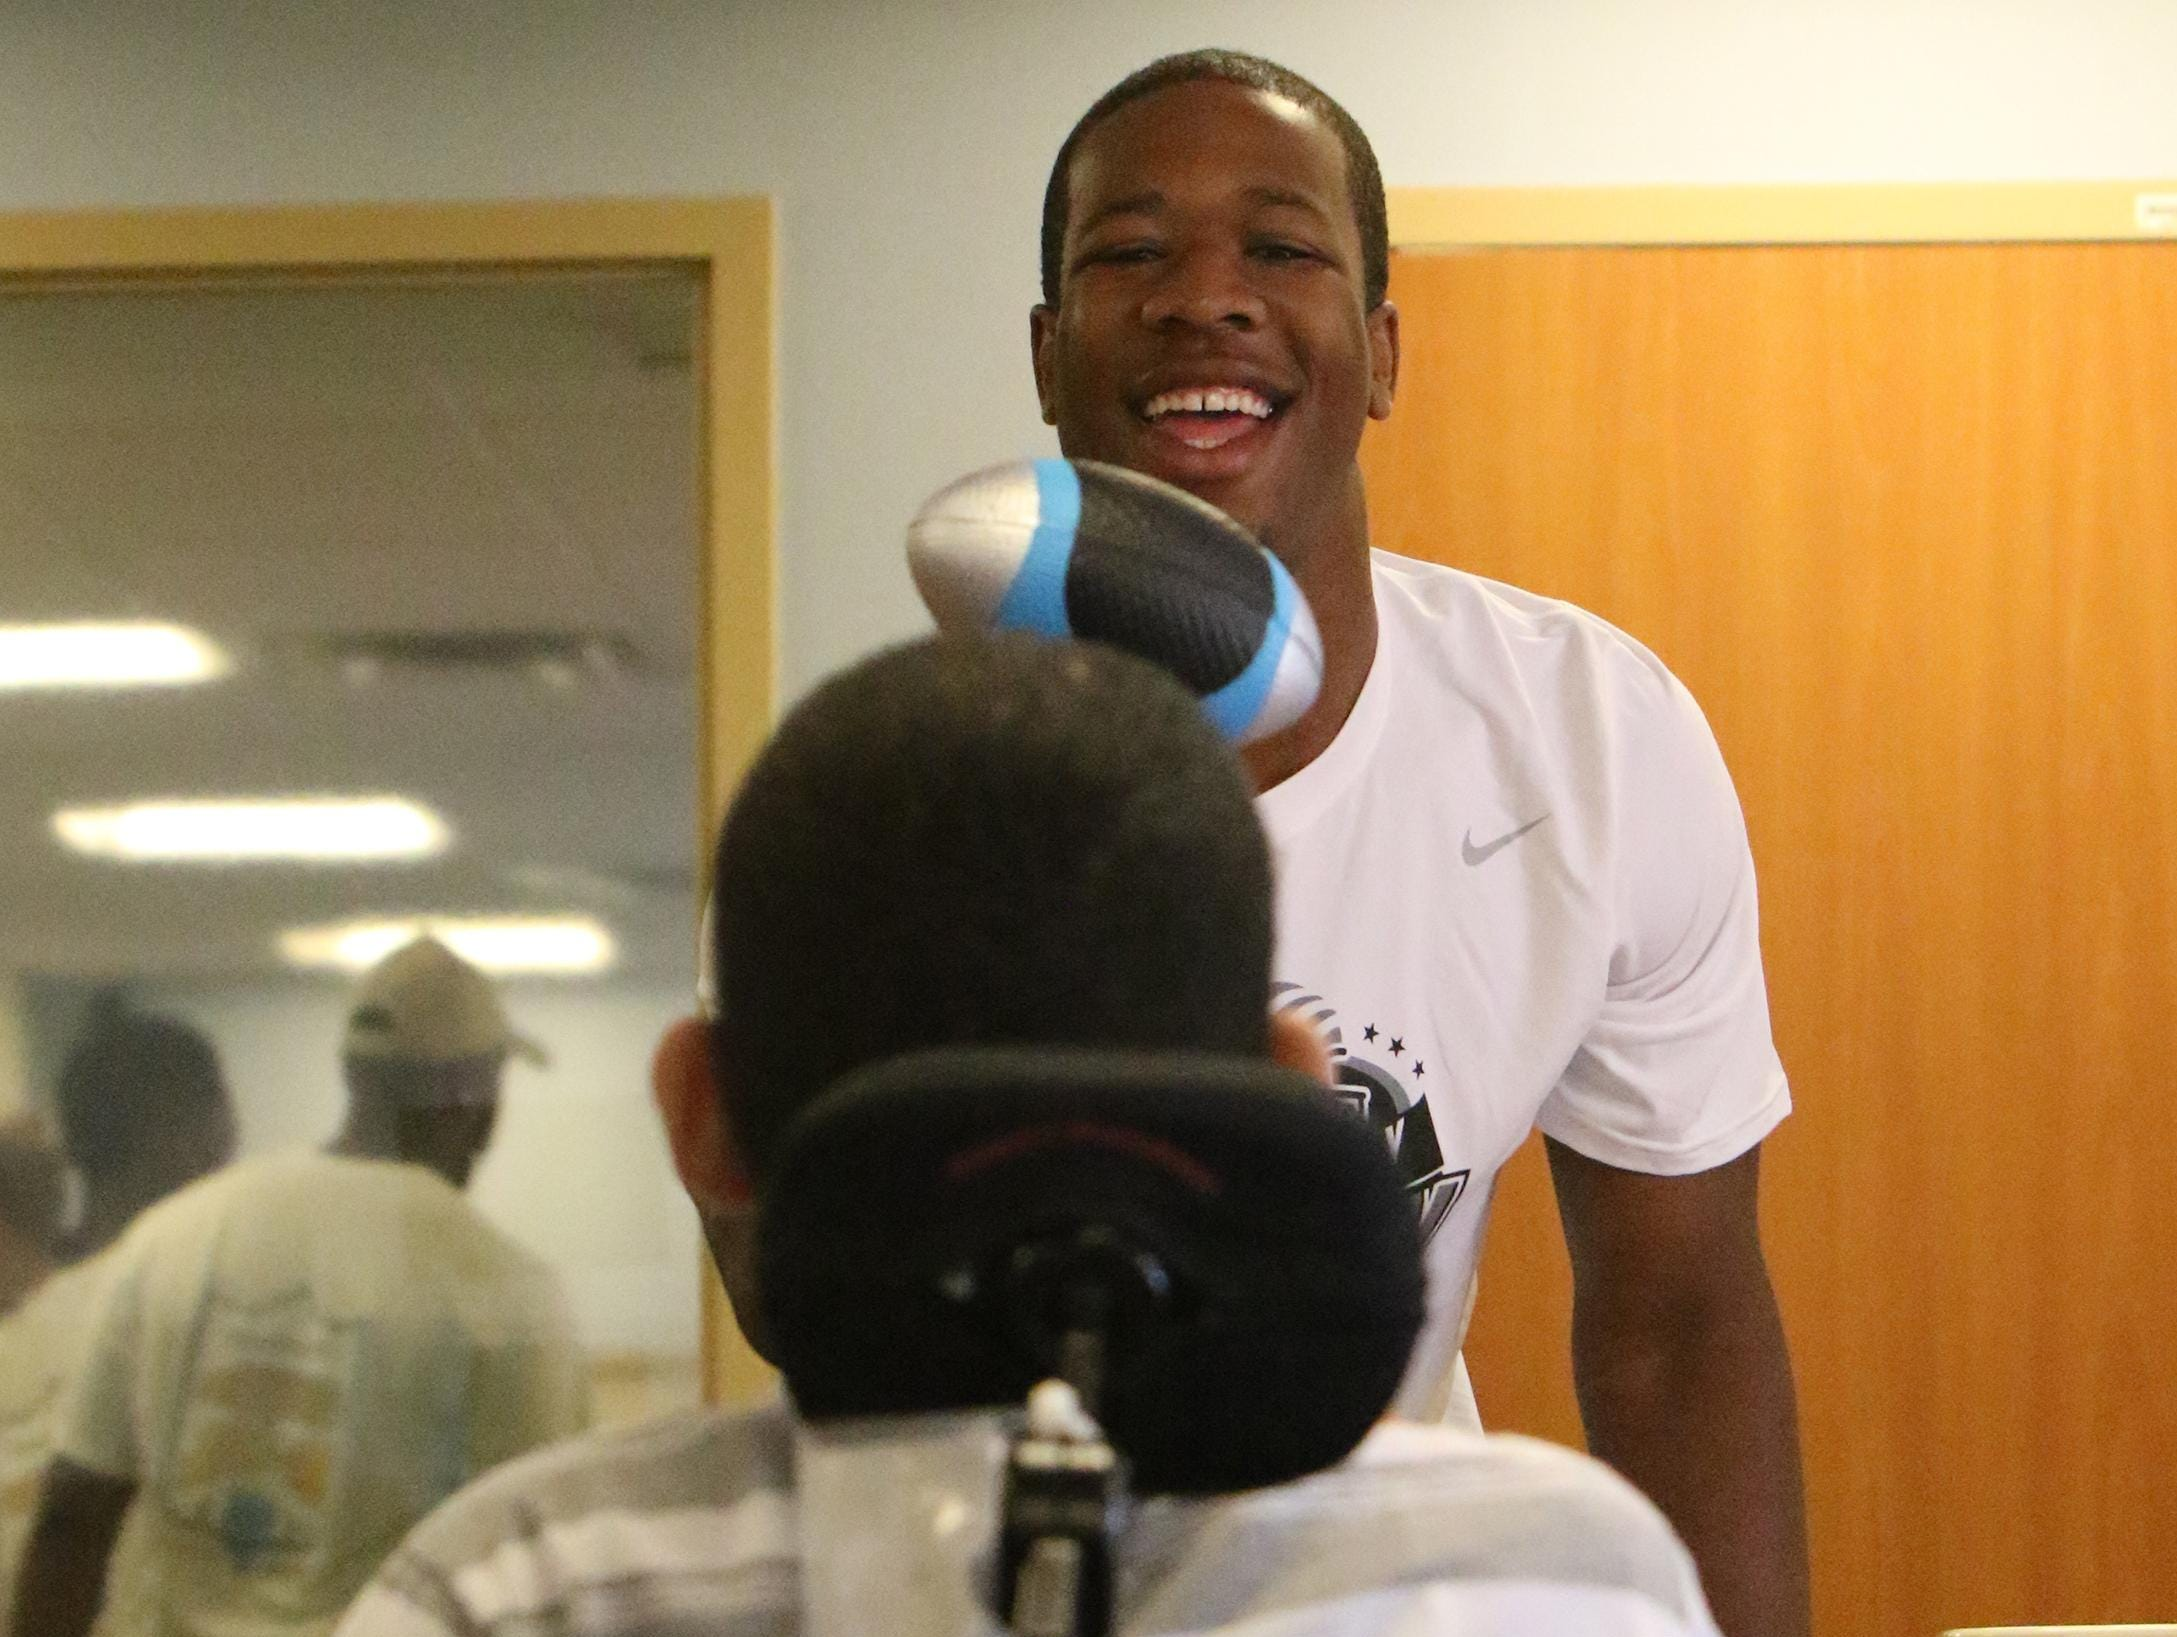 Jaquan McLeod of Roselle High School interacts with a patient at Children's Specialized Hospital in Mountainside on Monday as the Snapple Bowl's Union County All-Stars made their annual visit.